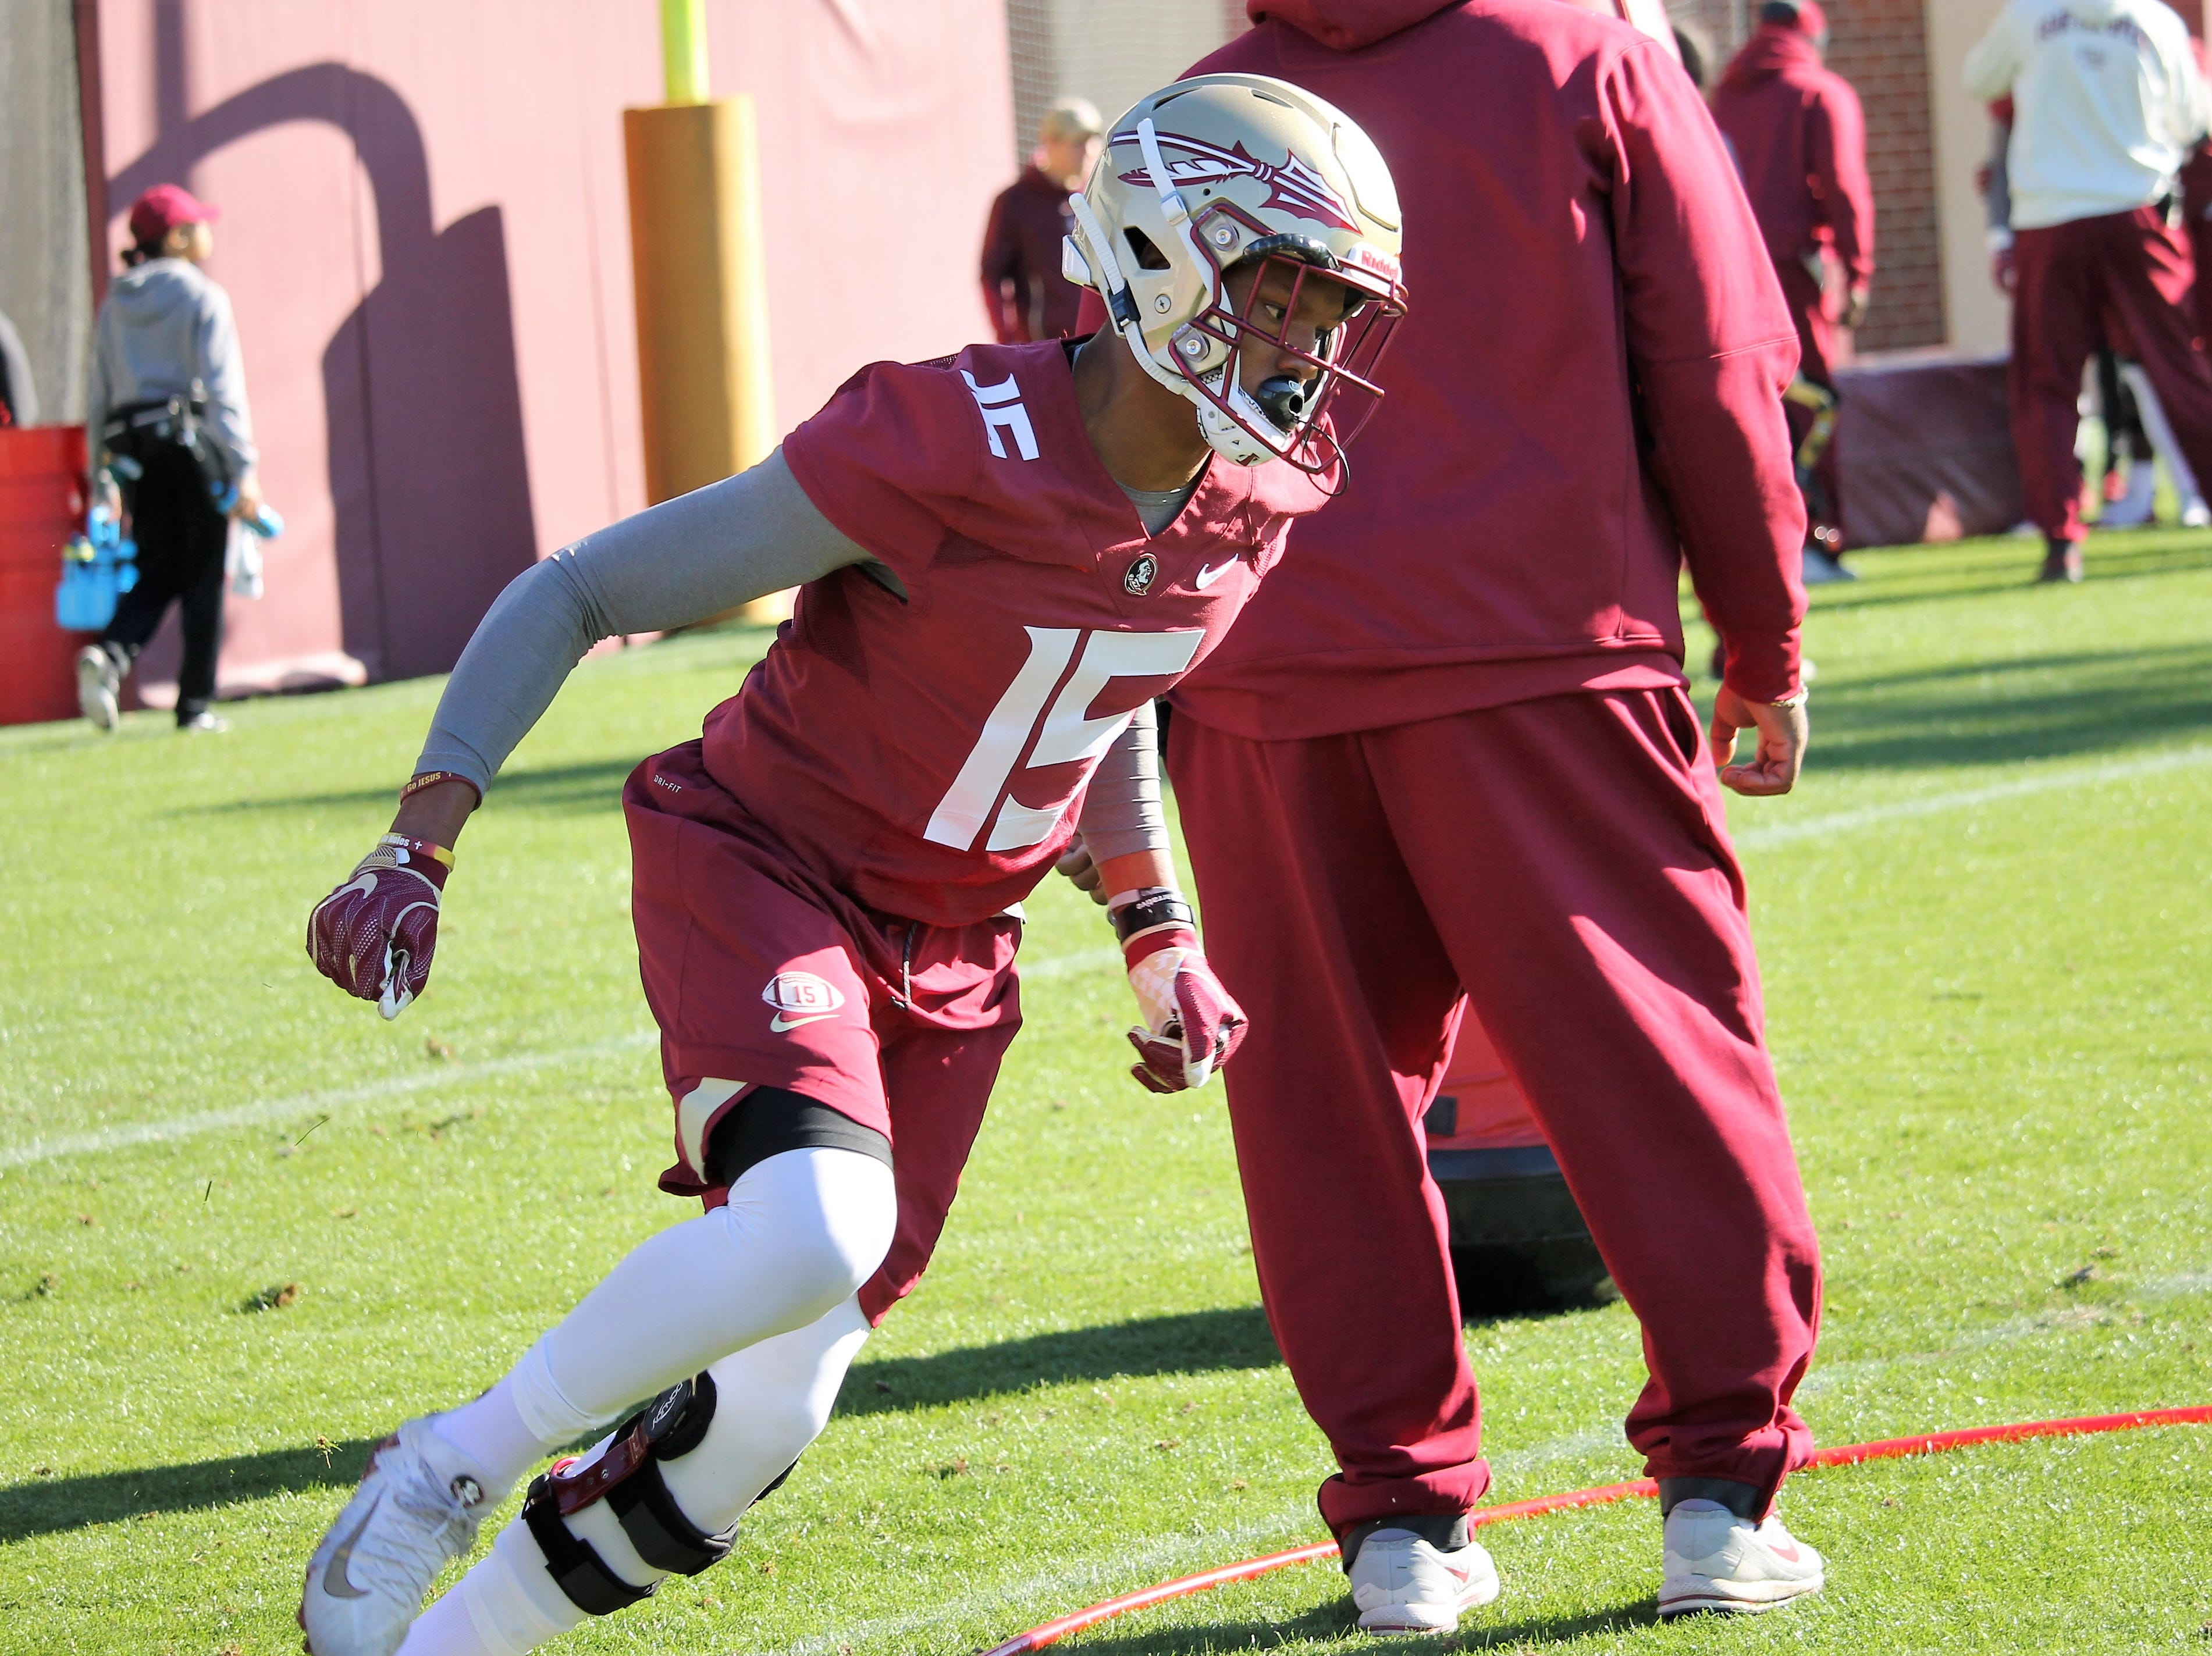 Defensive back Carlos Becker at FSU football practice on March 6, 2019.